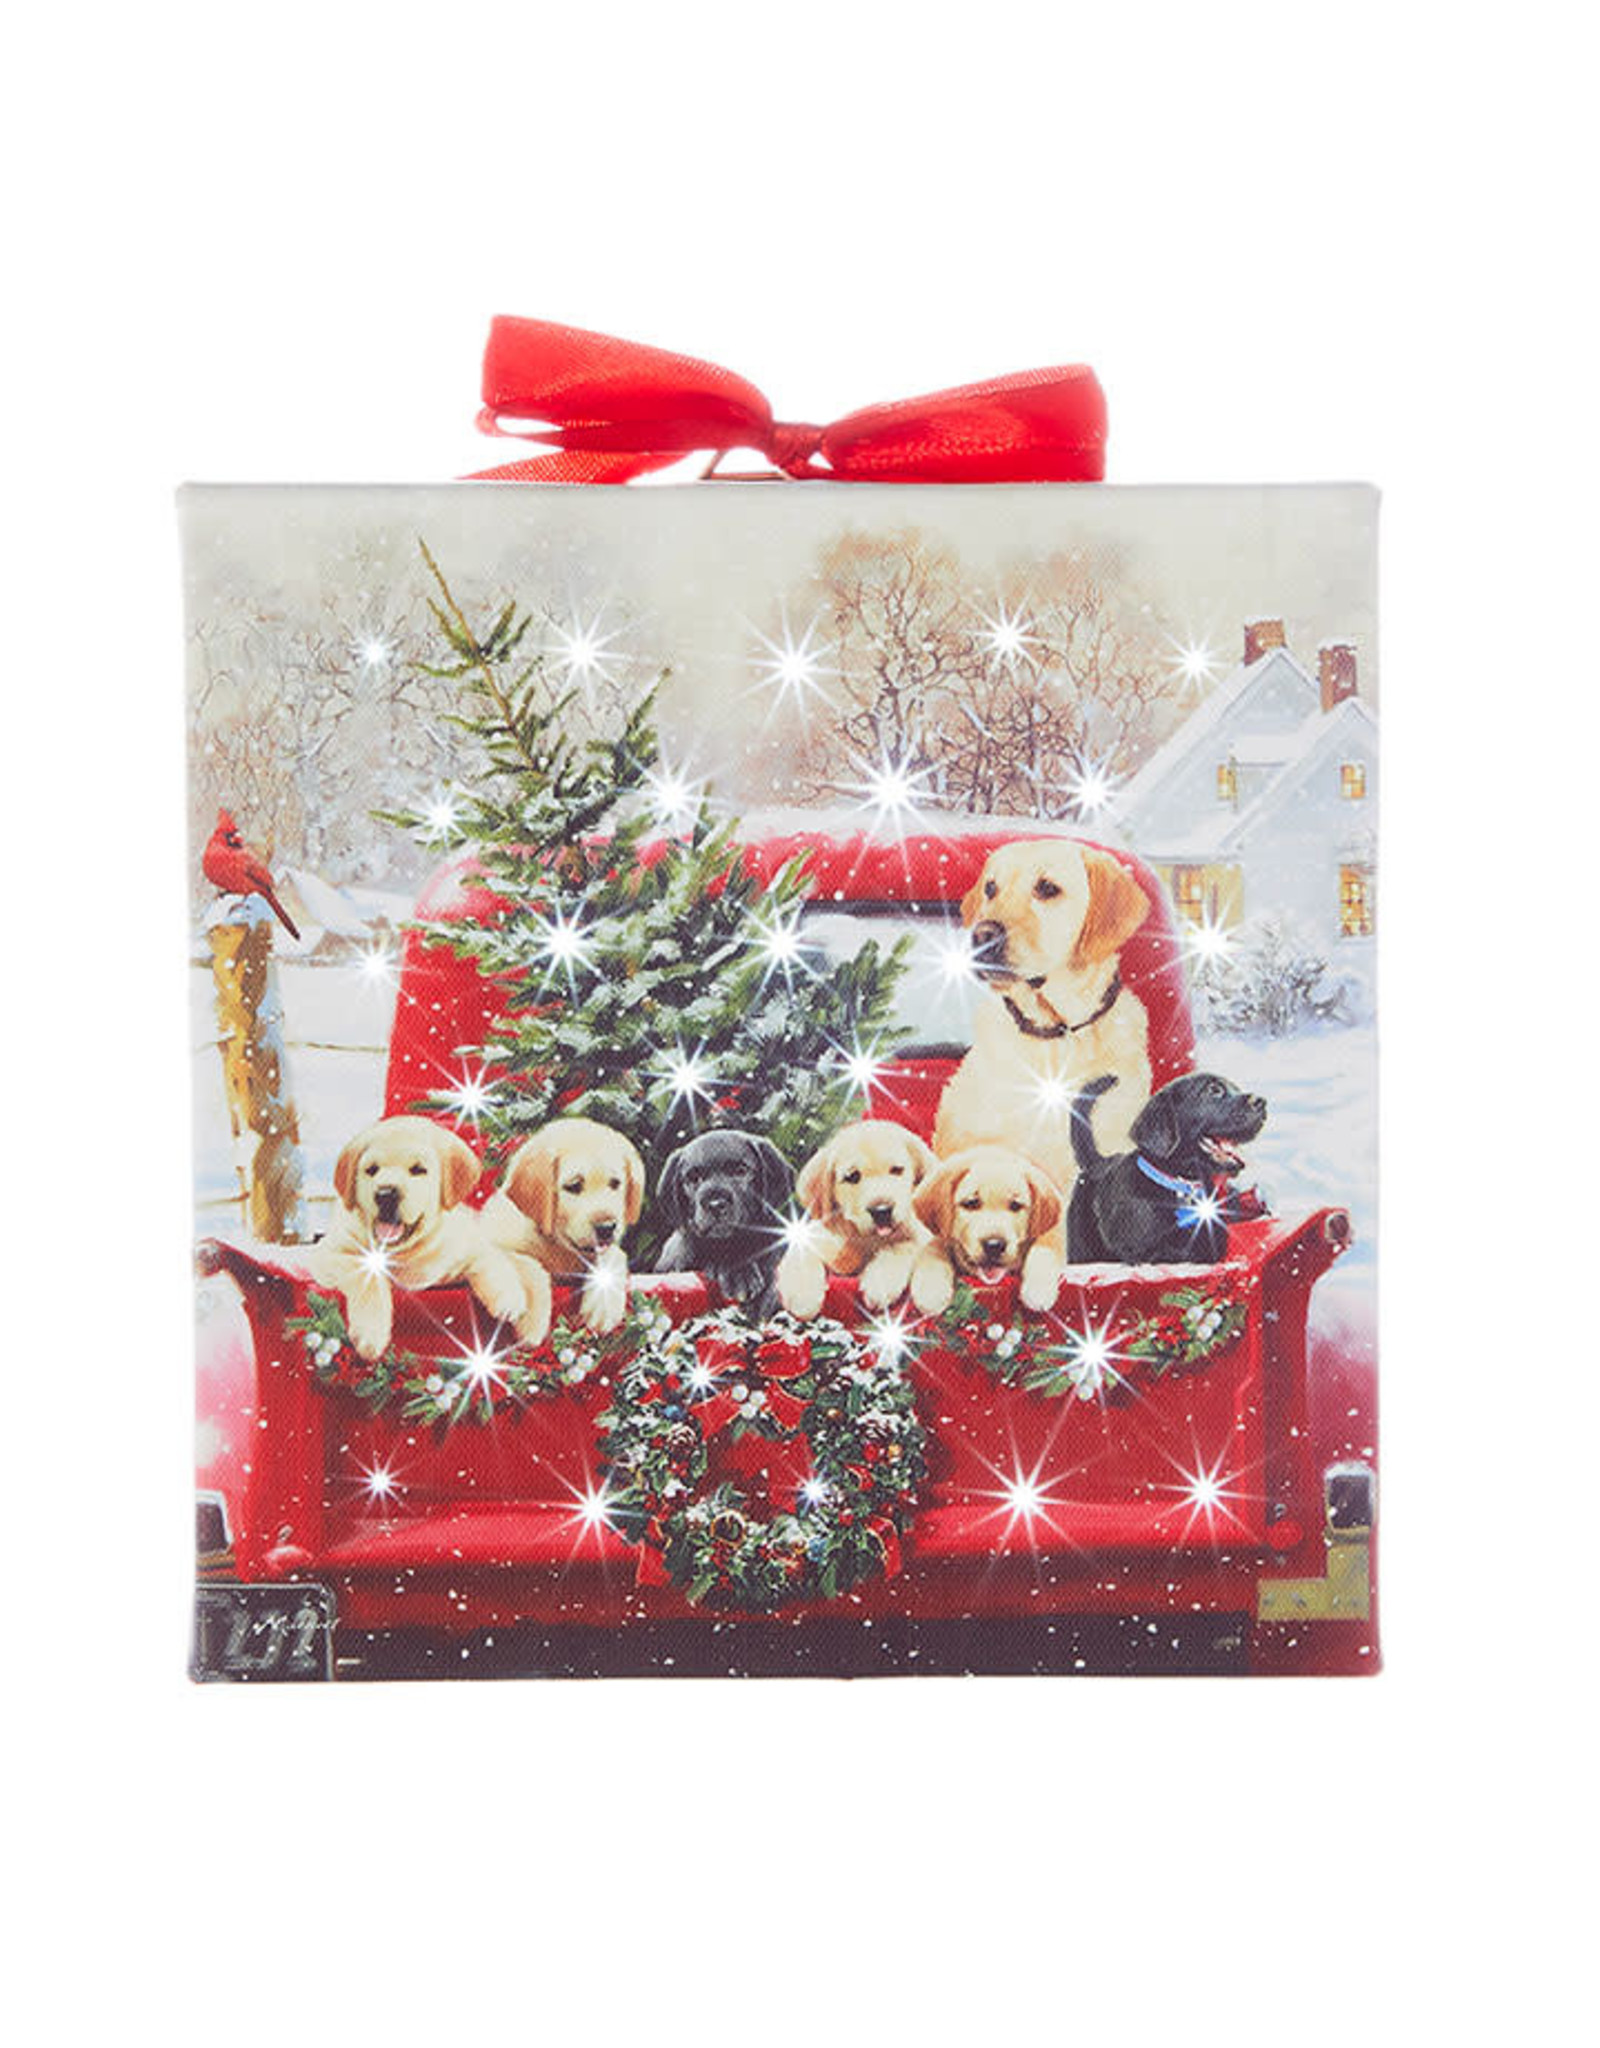 Raz Imports LABRADORS IN TRUCK LIGHTED PRINT 6""